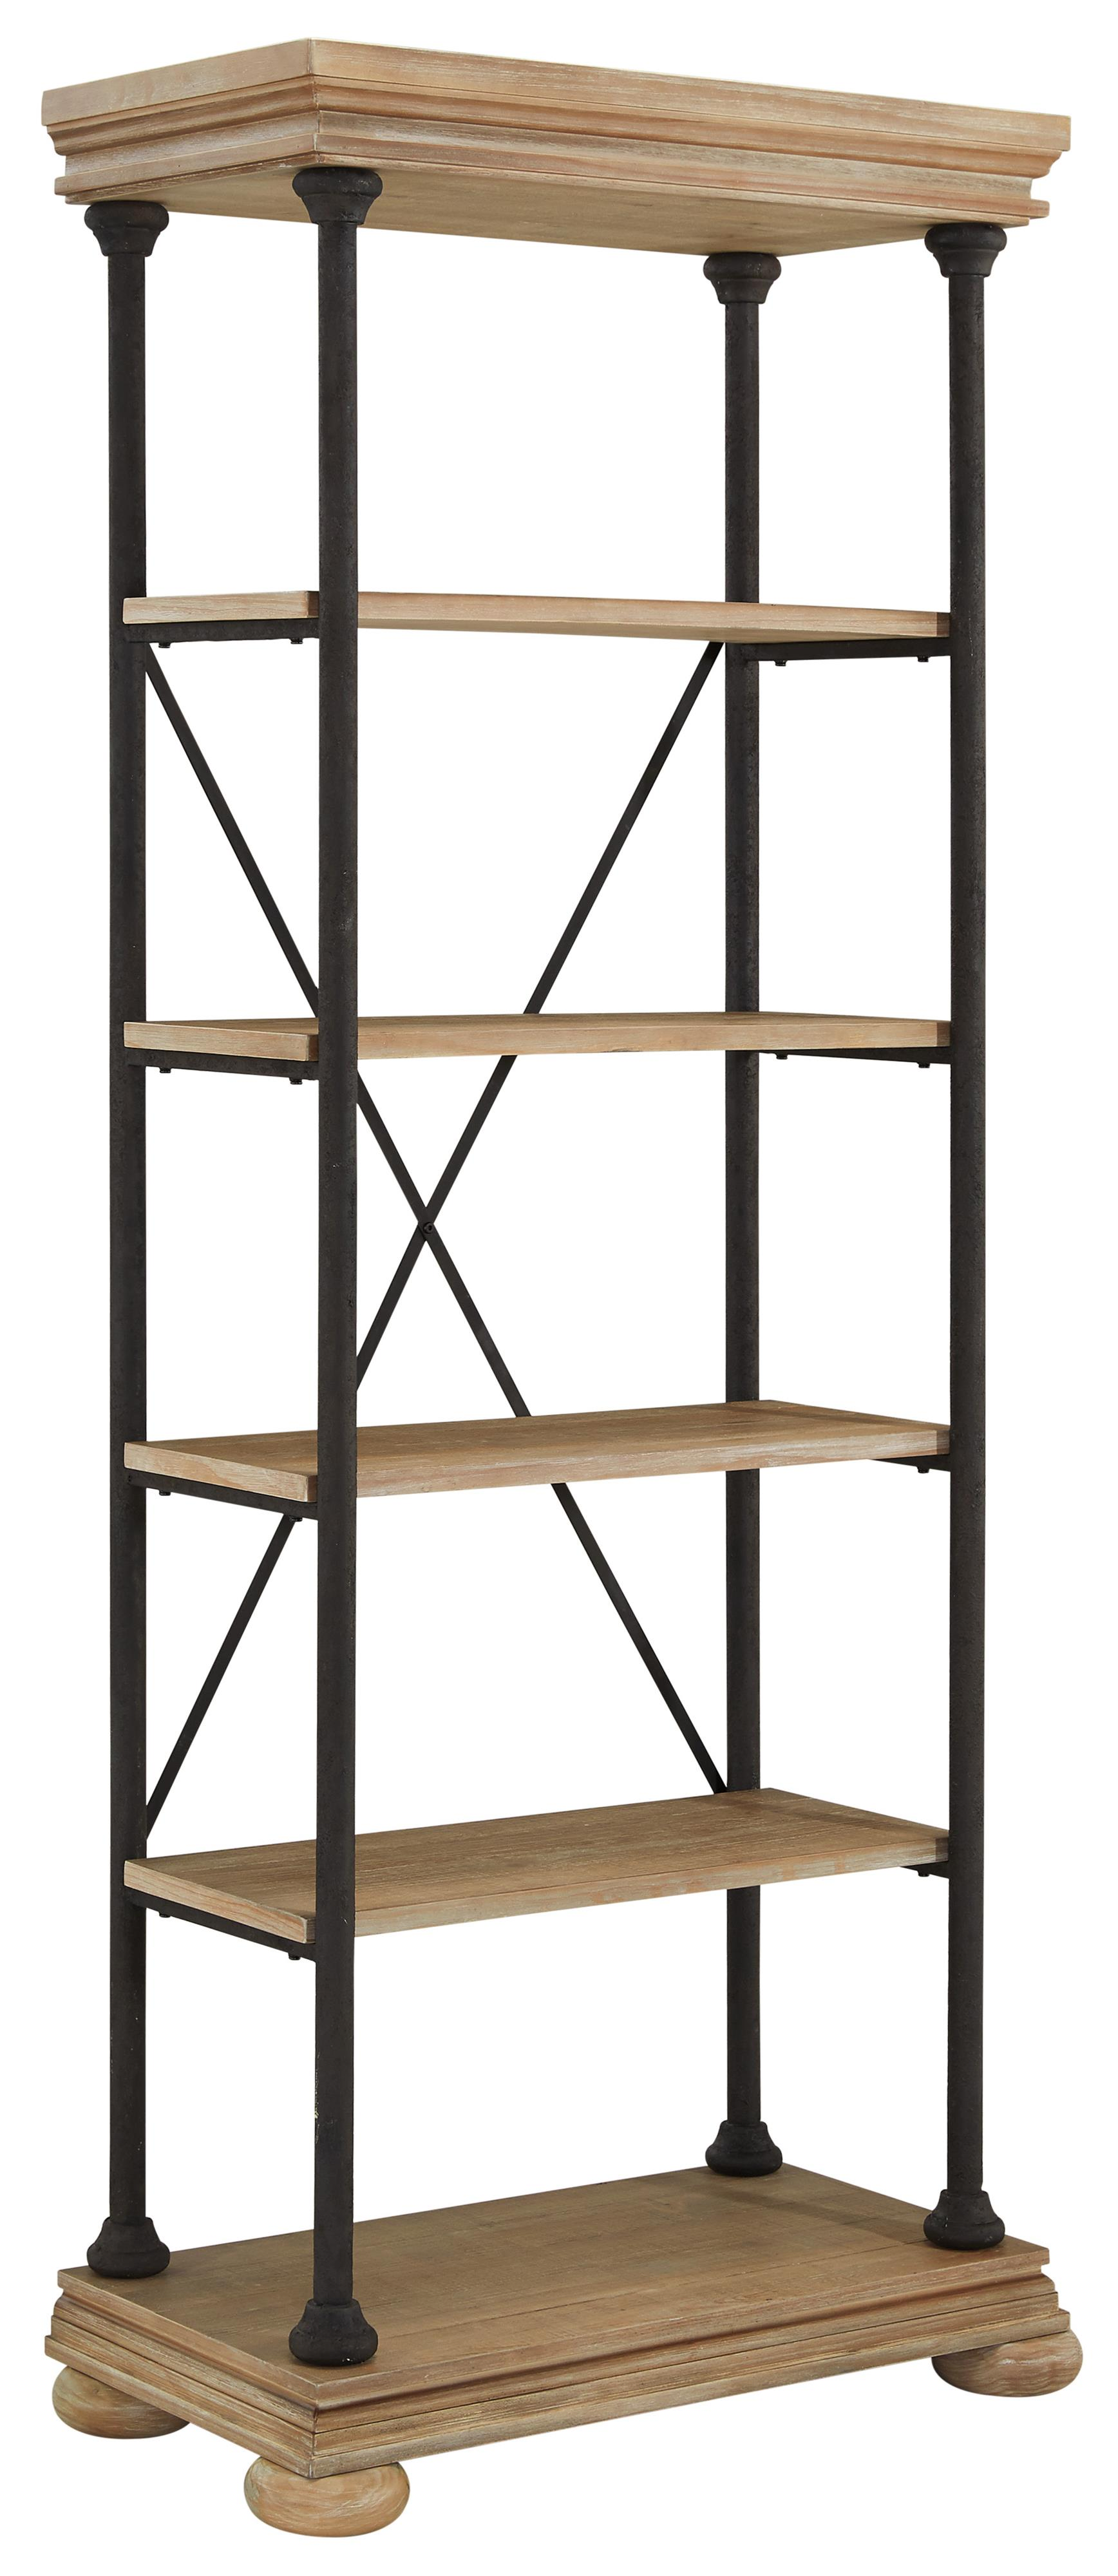 Signature Design by Ashley Shennifin Large Bookcase - Item Number: H862-17